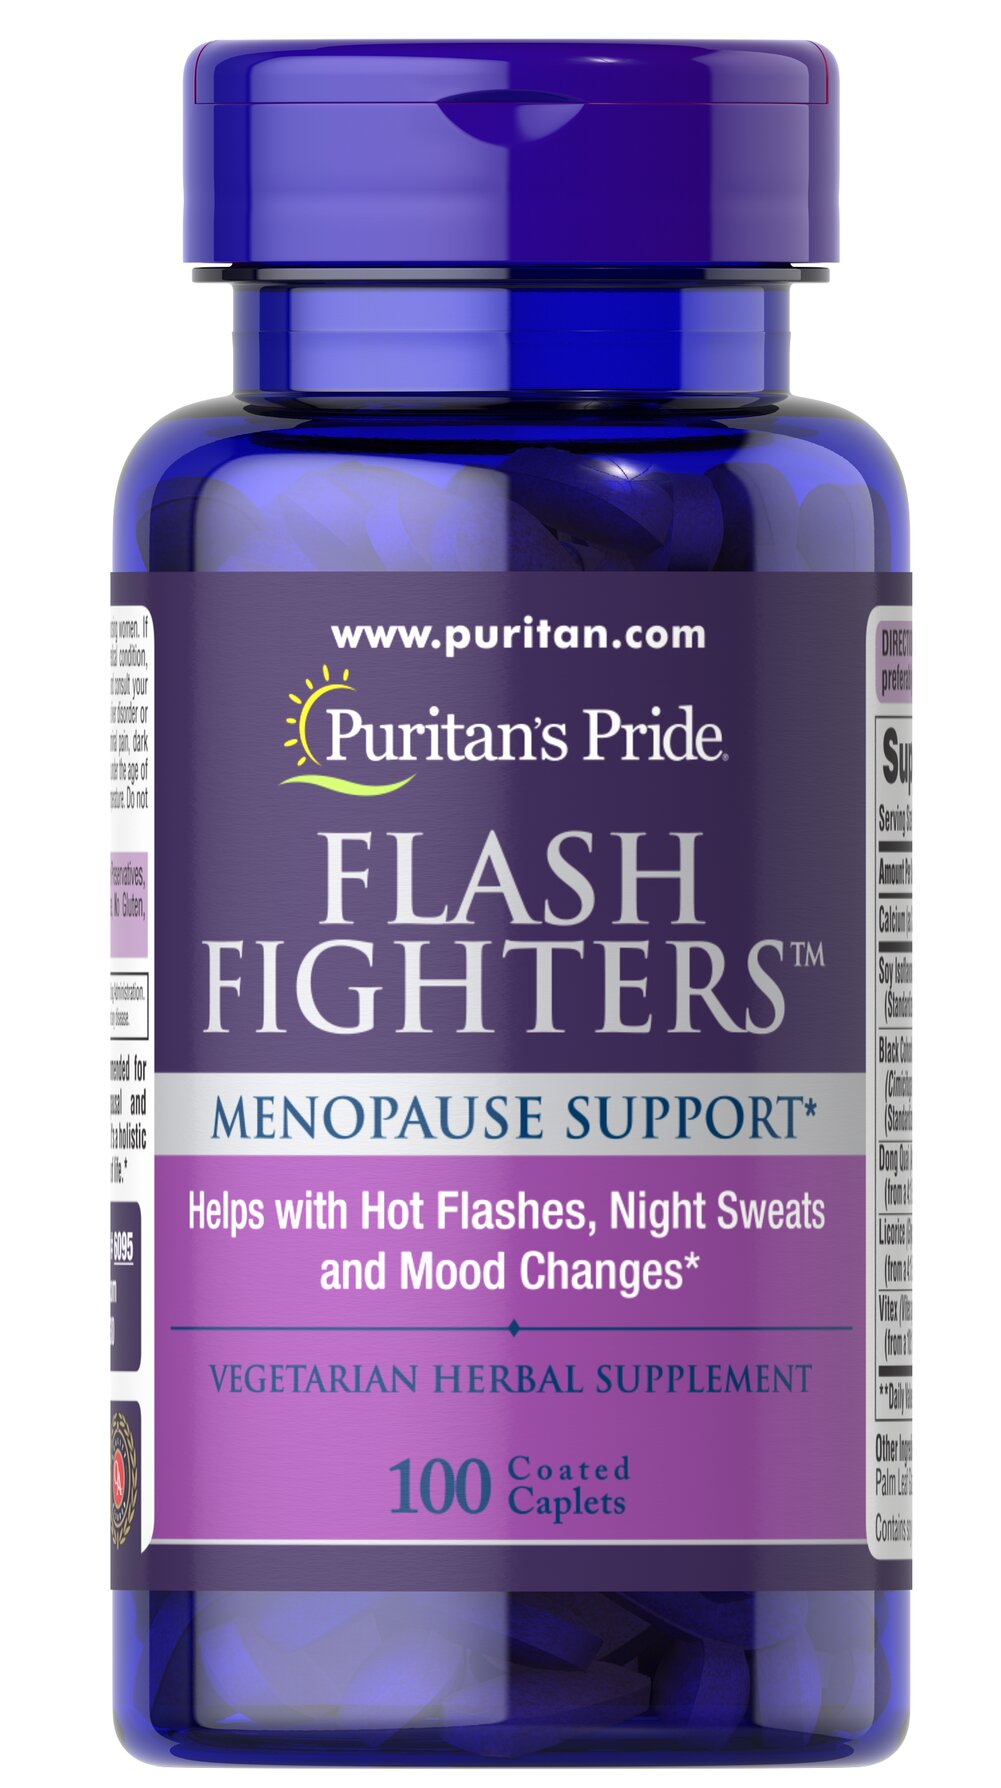 Flash Fighters™ <p>A combination of ingredients including Black Cohosh, Calcium, Soy, and more to help support the health of women during menopausal changes**</p> 100 Caplets  $24.69